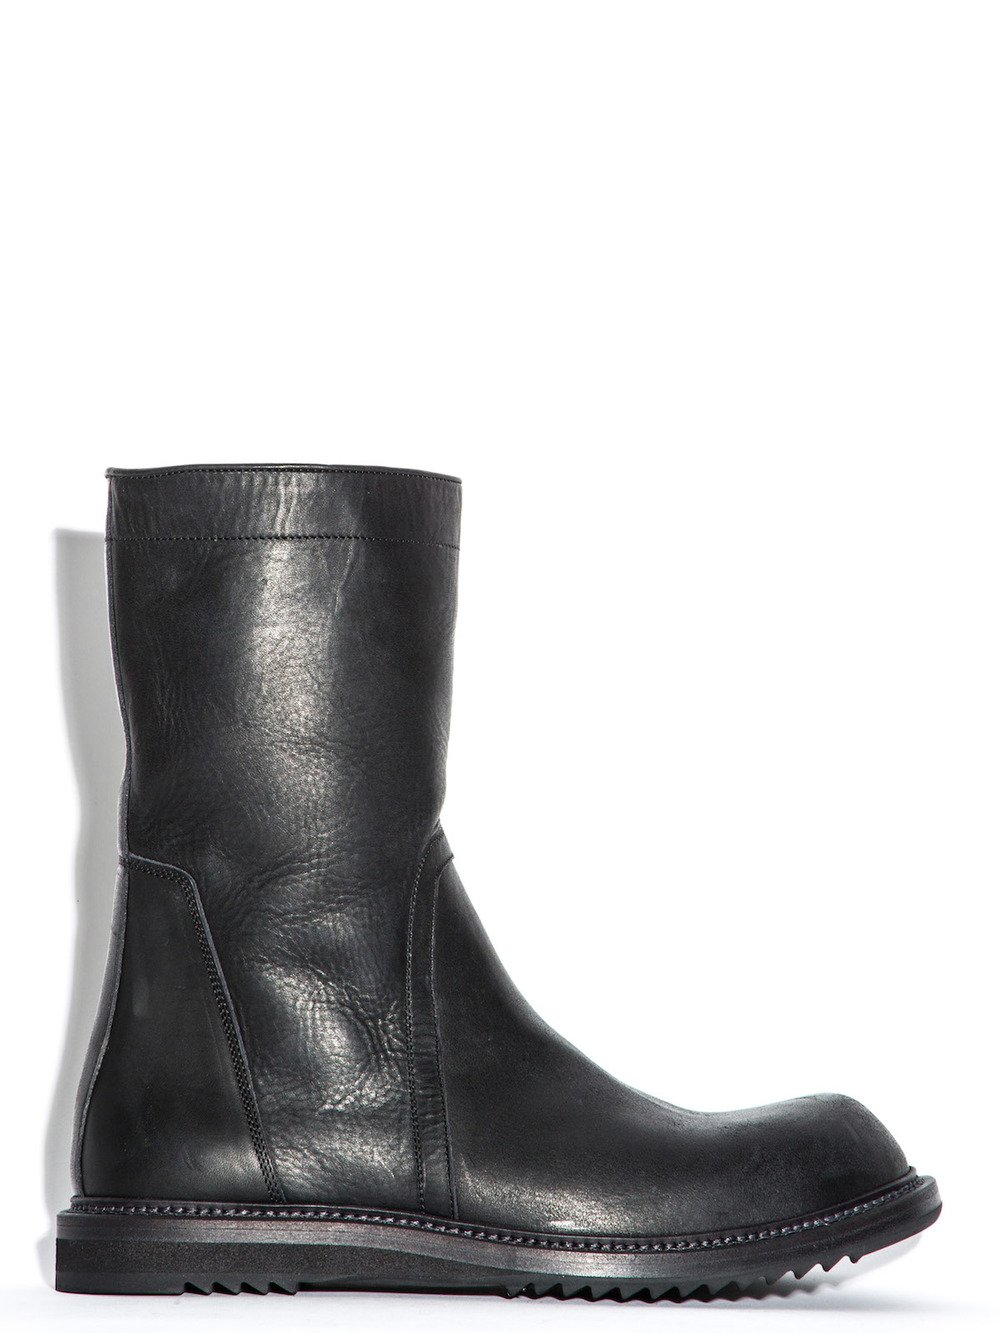 Rick Owens Leather boots B4iUcBKrG7